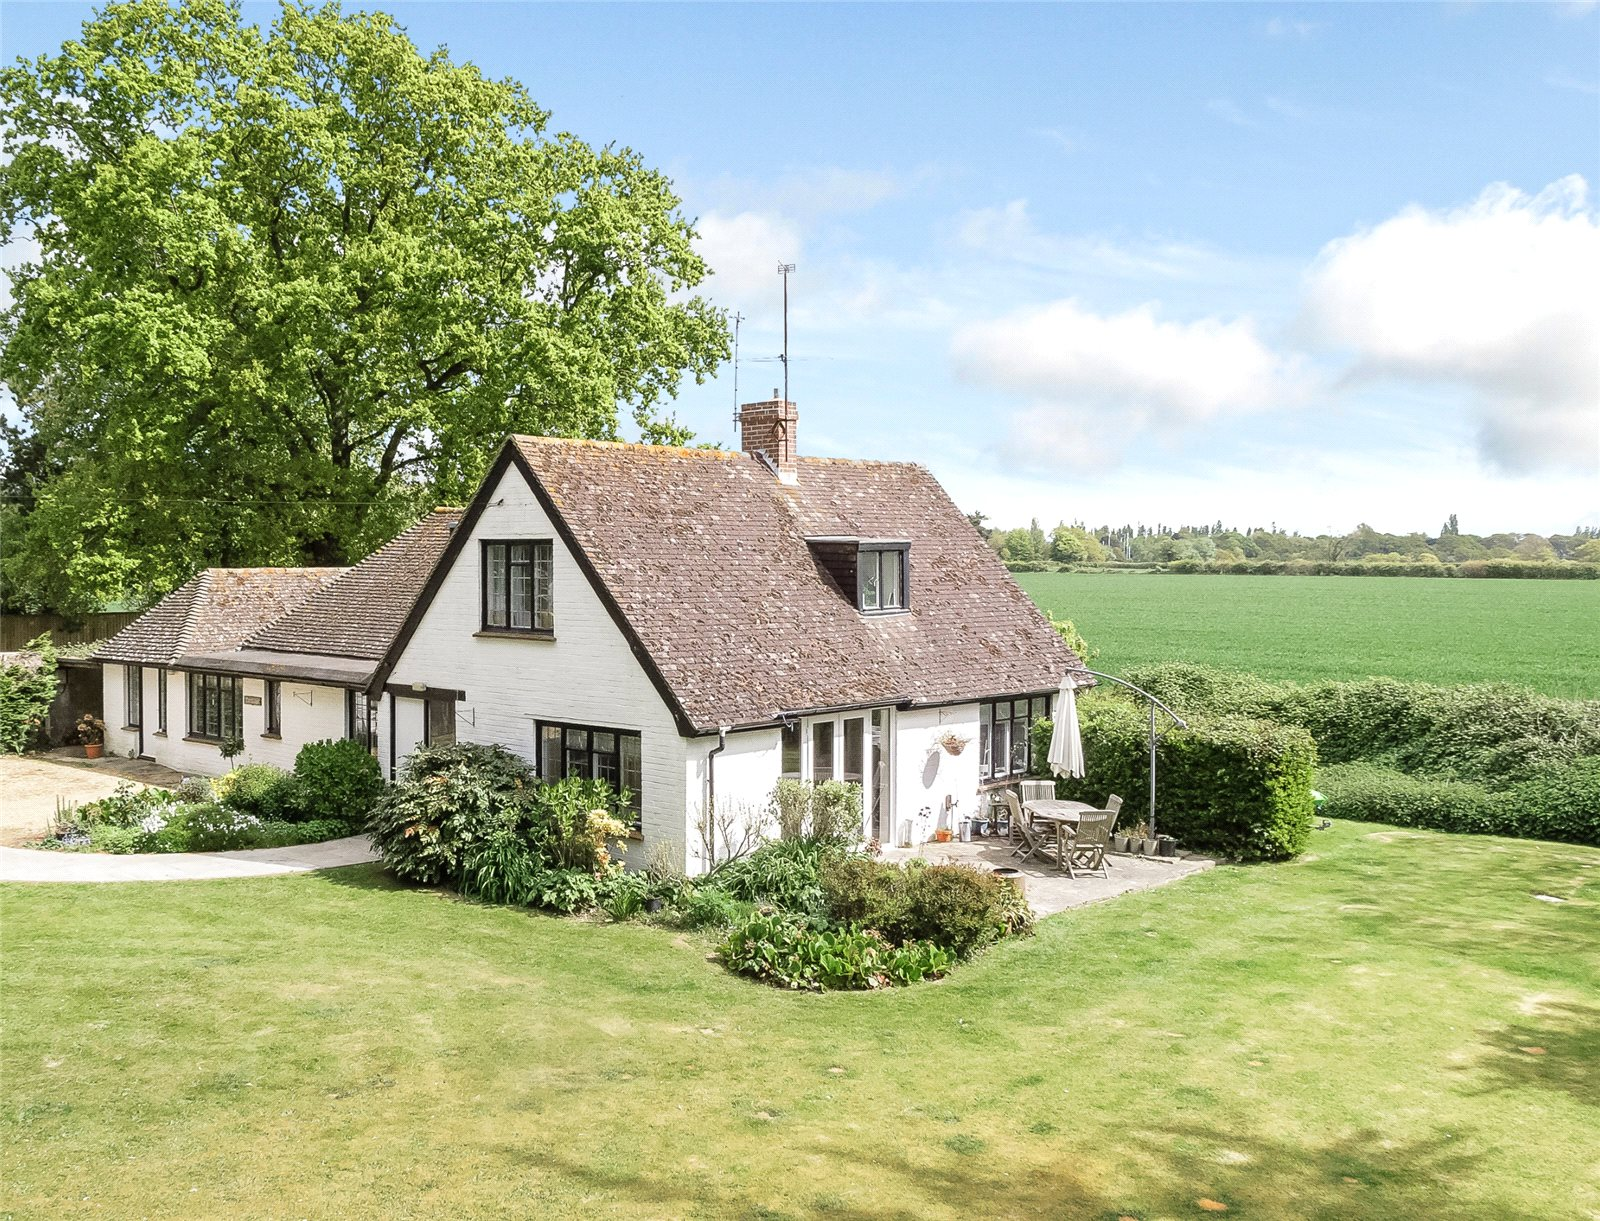 Частный дом для того Продажа на Westlands Estate, Birdham, Chichester, West Sussex, PO20 Chichester, Англия